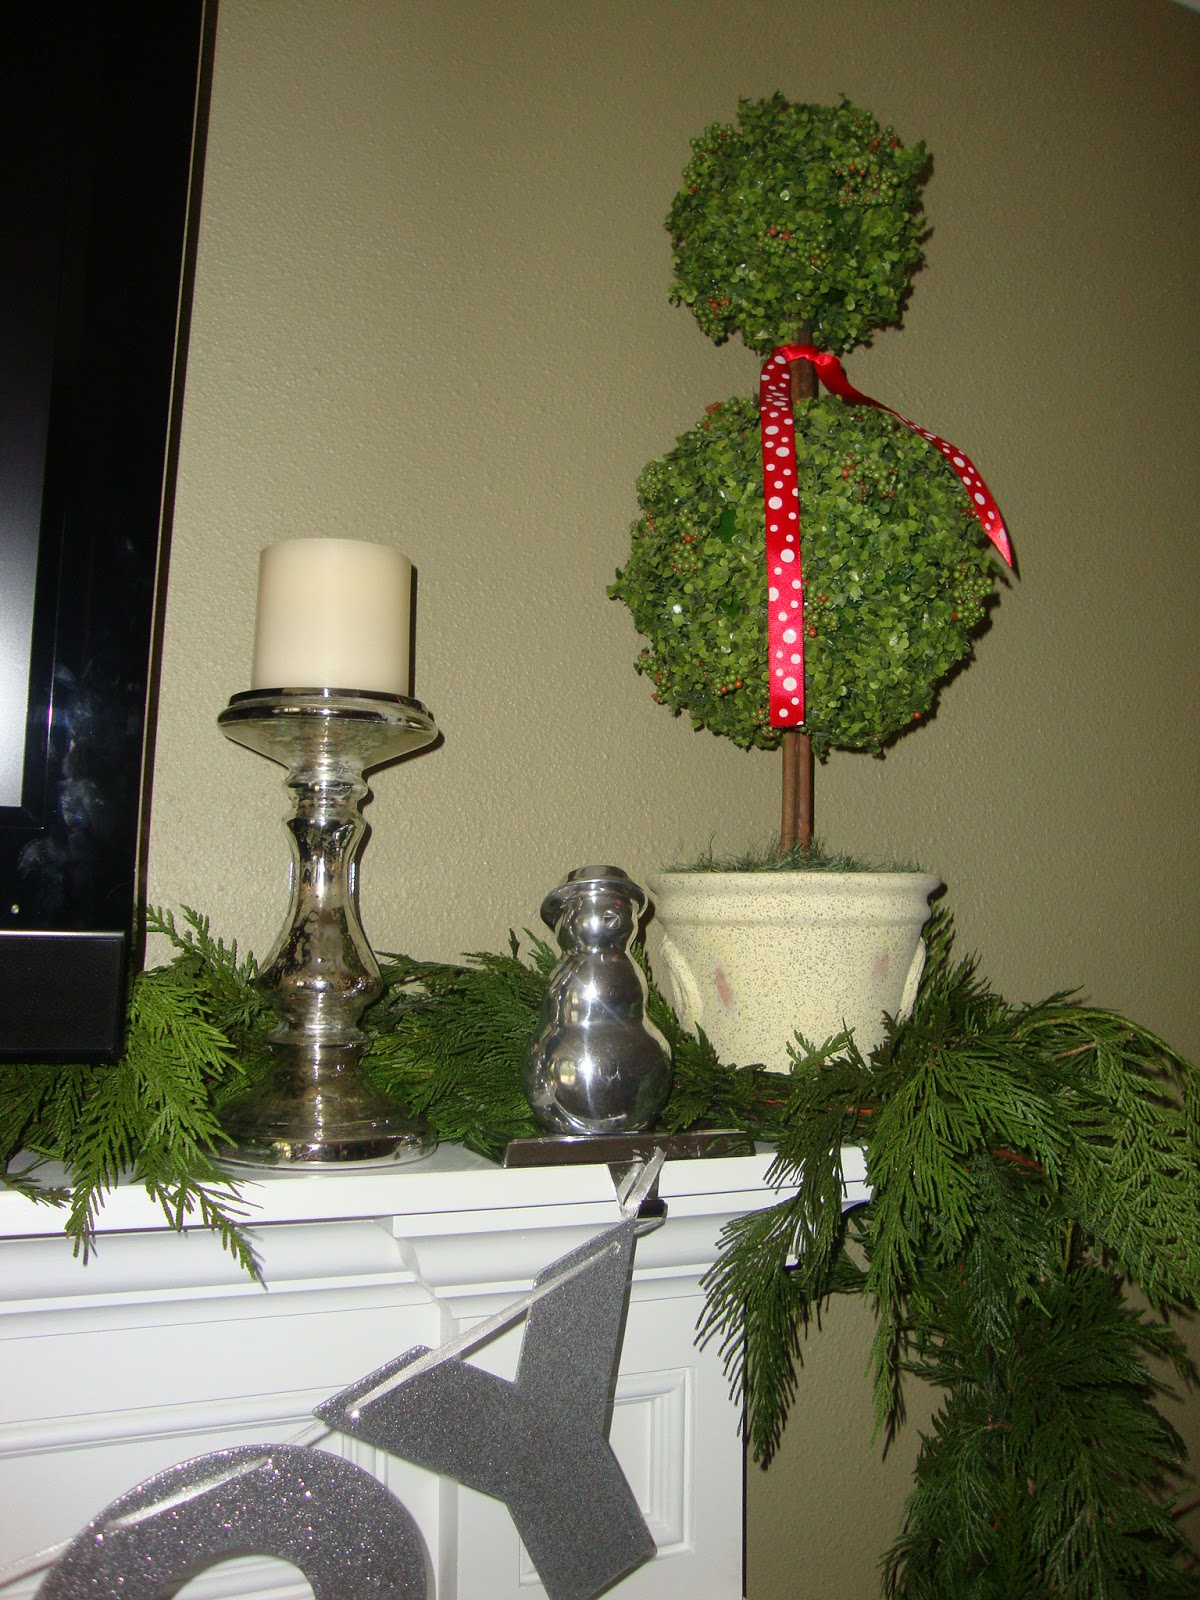 Steward of Design: My Christmas Mantel